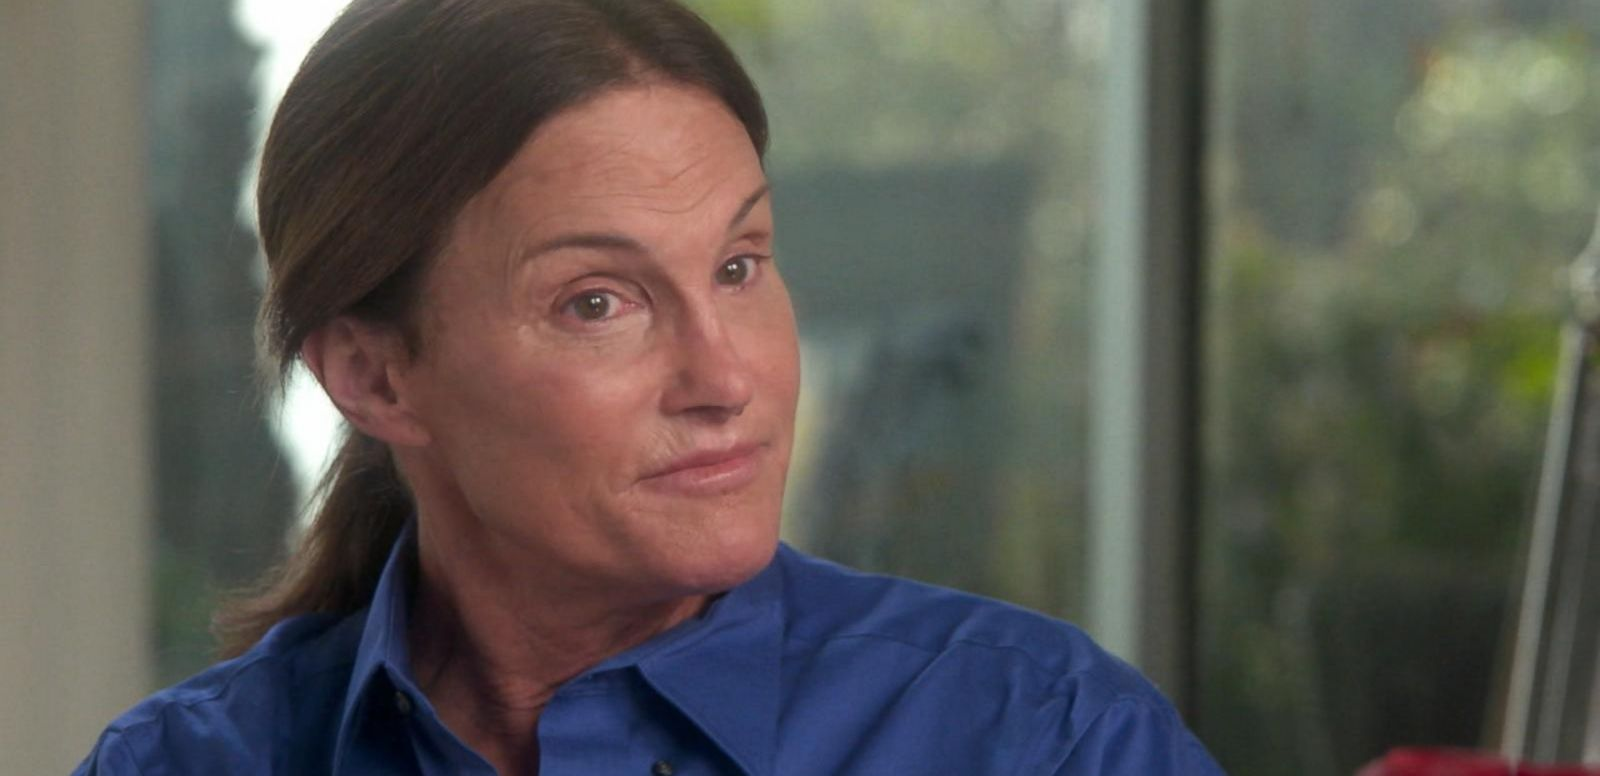 VIDEO: Bruce Jenner, I Am a Woman